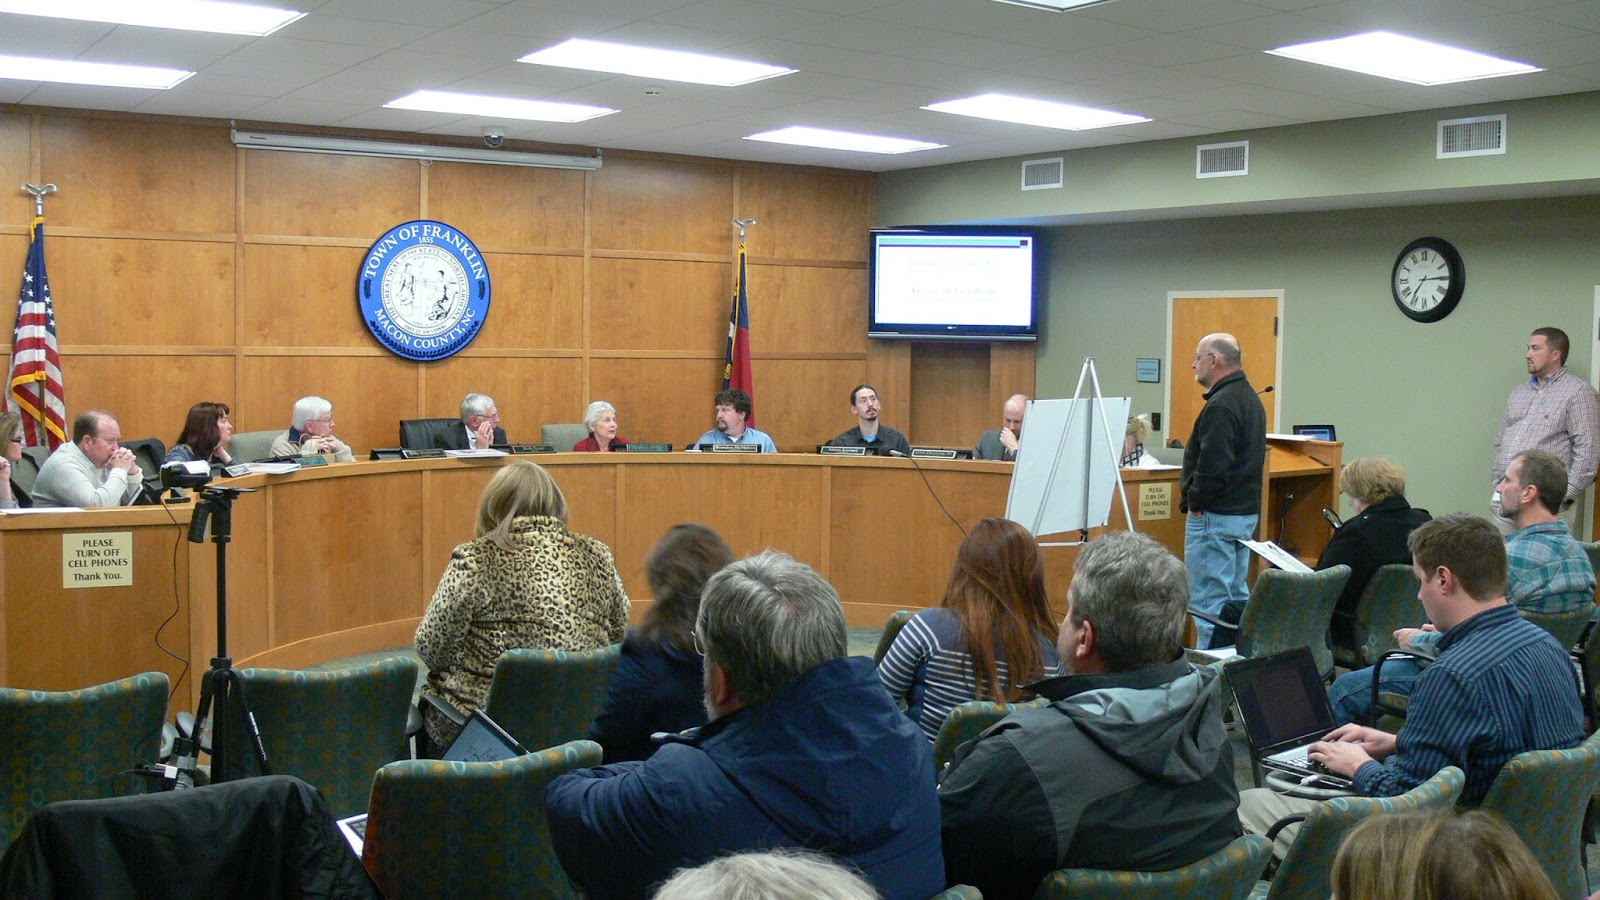 The January 2016 regular meeting of  the Franklin Town Board of Aldermen